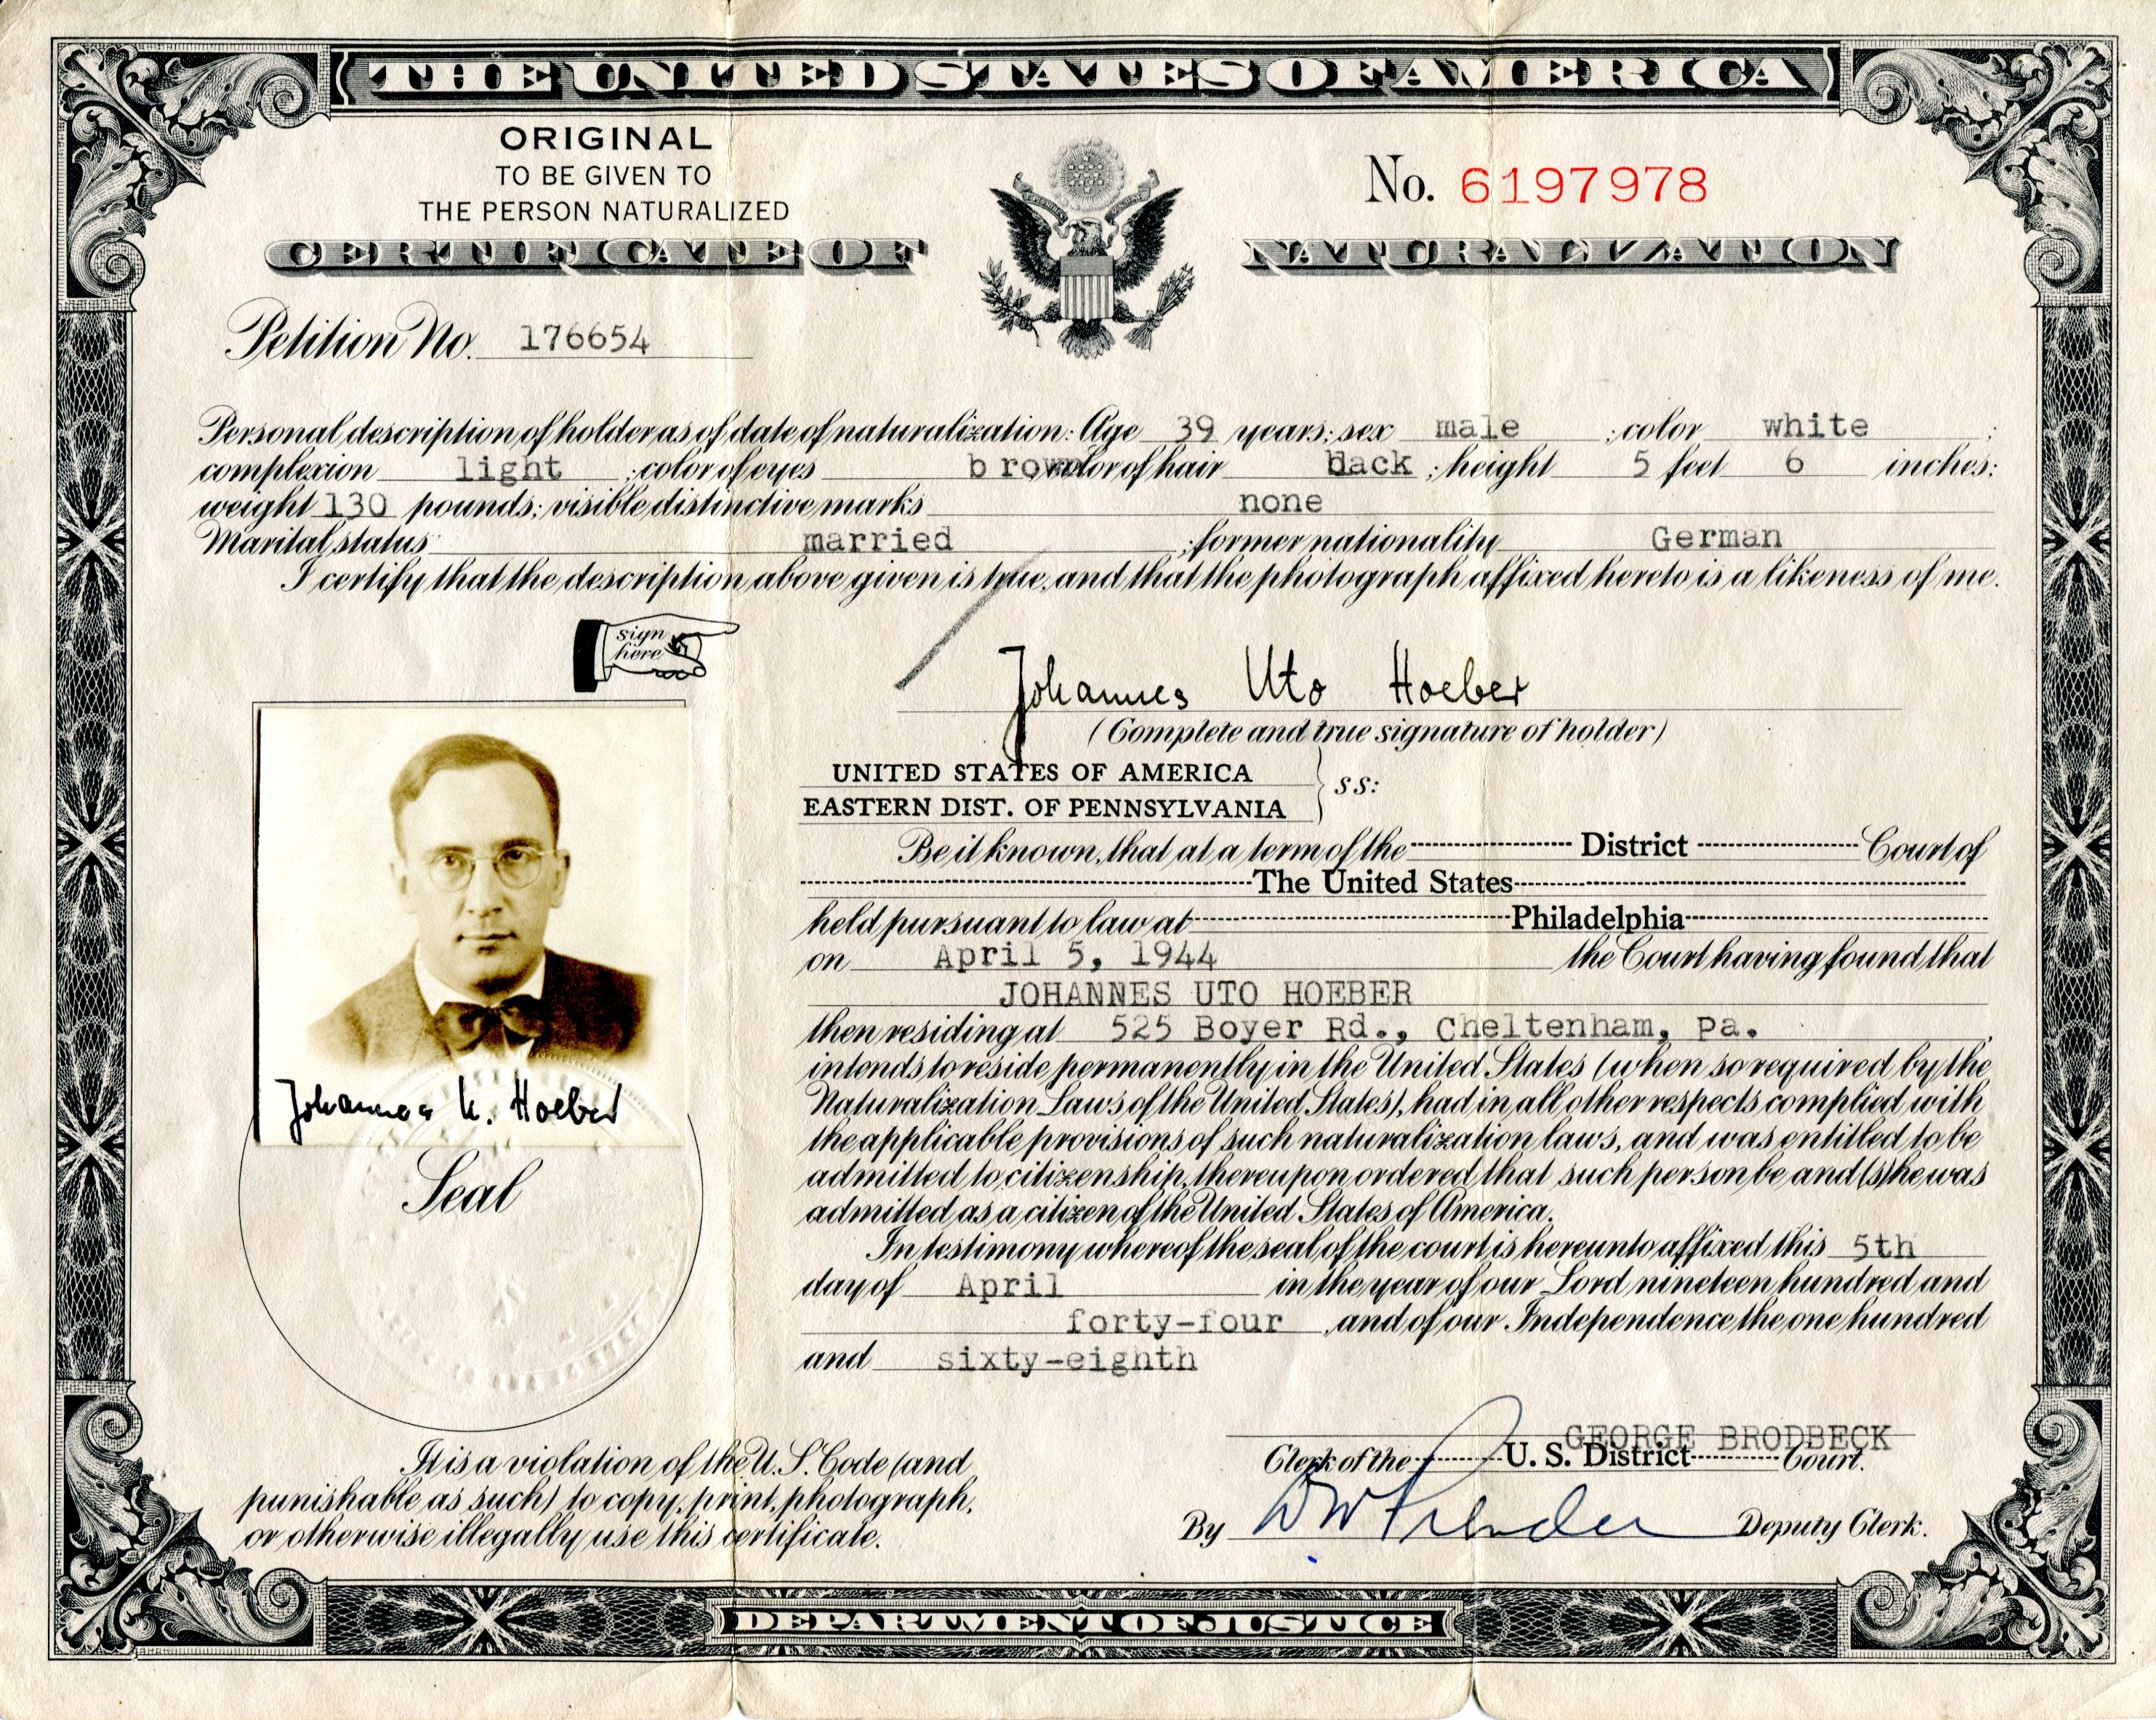 Us citizenship certificate hoeber citizenship certificate of my father johannes u hoeber april 5 1944 xflitez Image collections